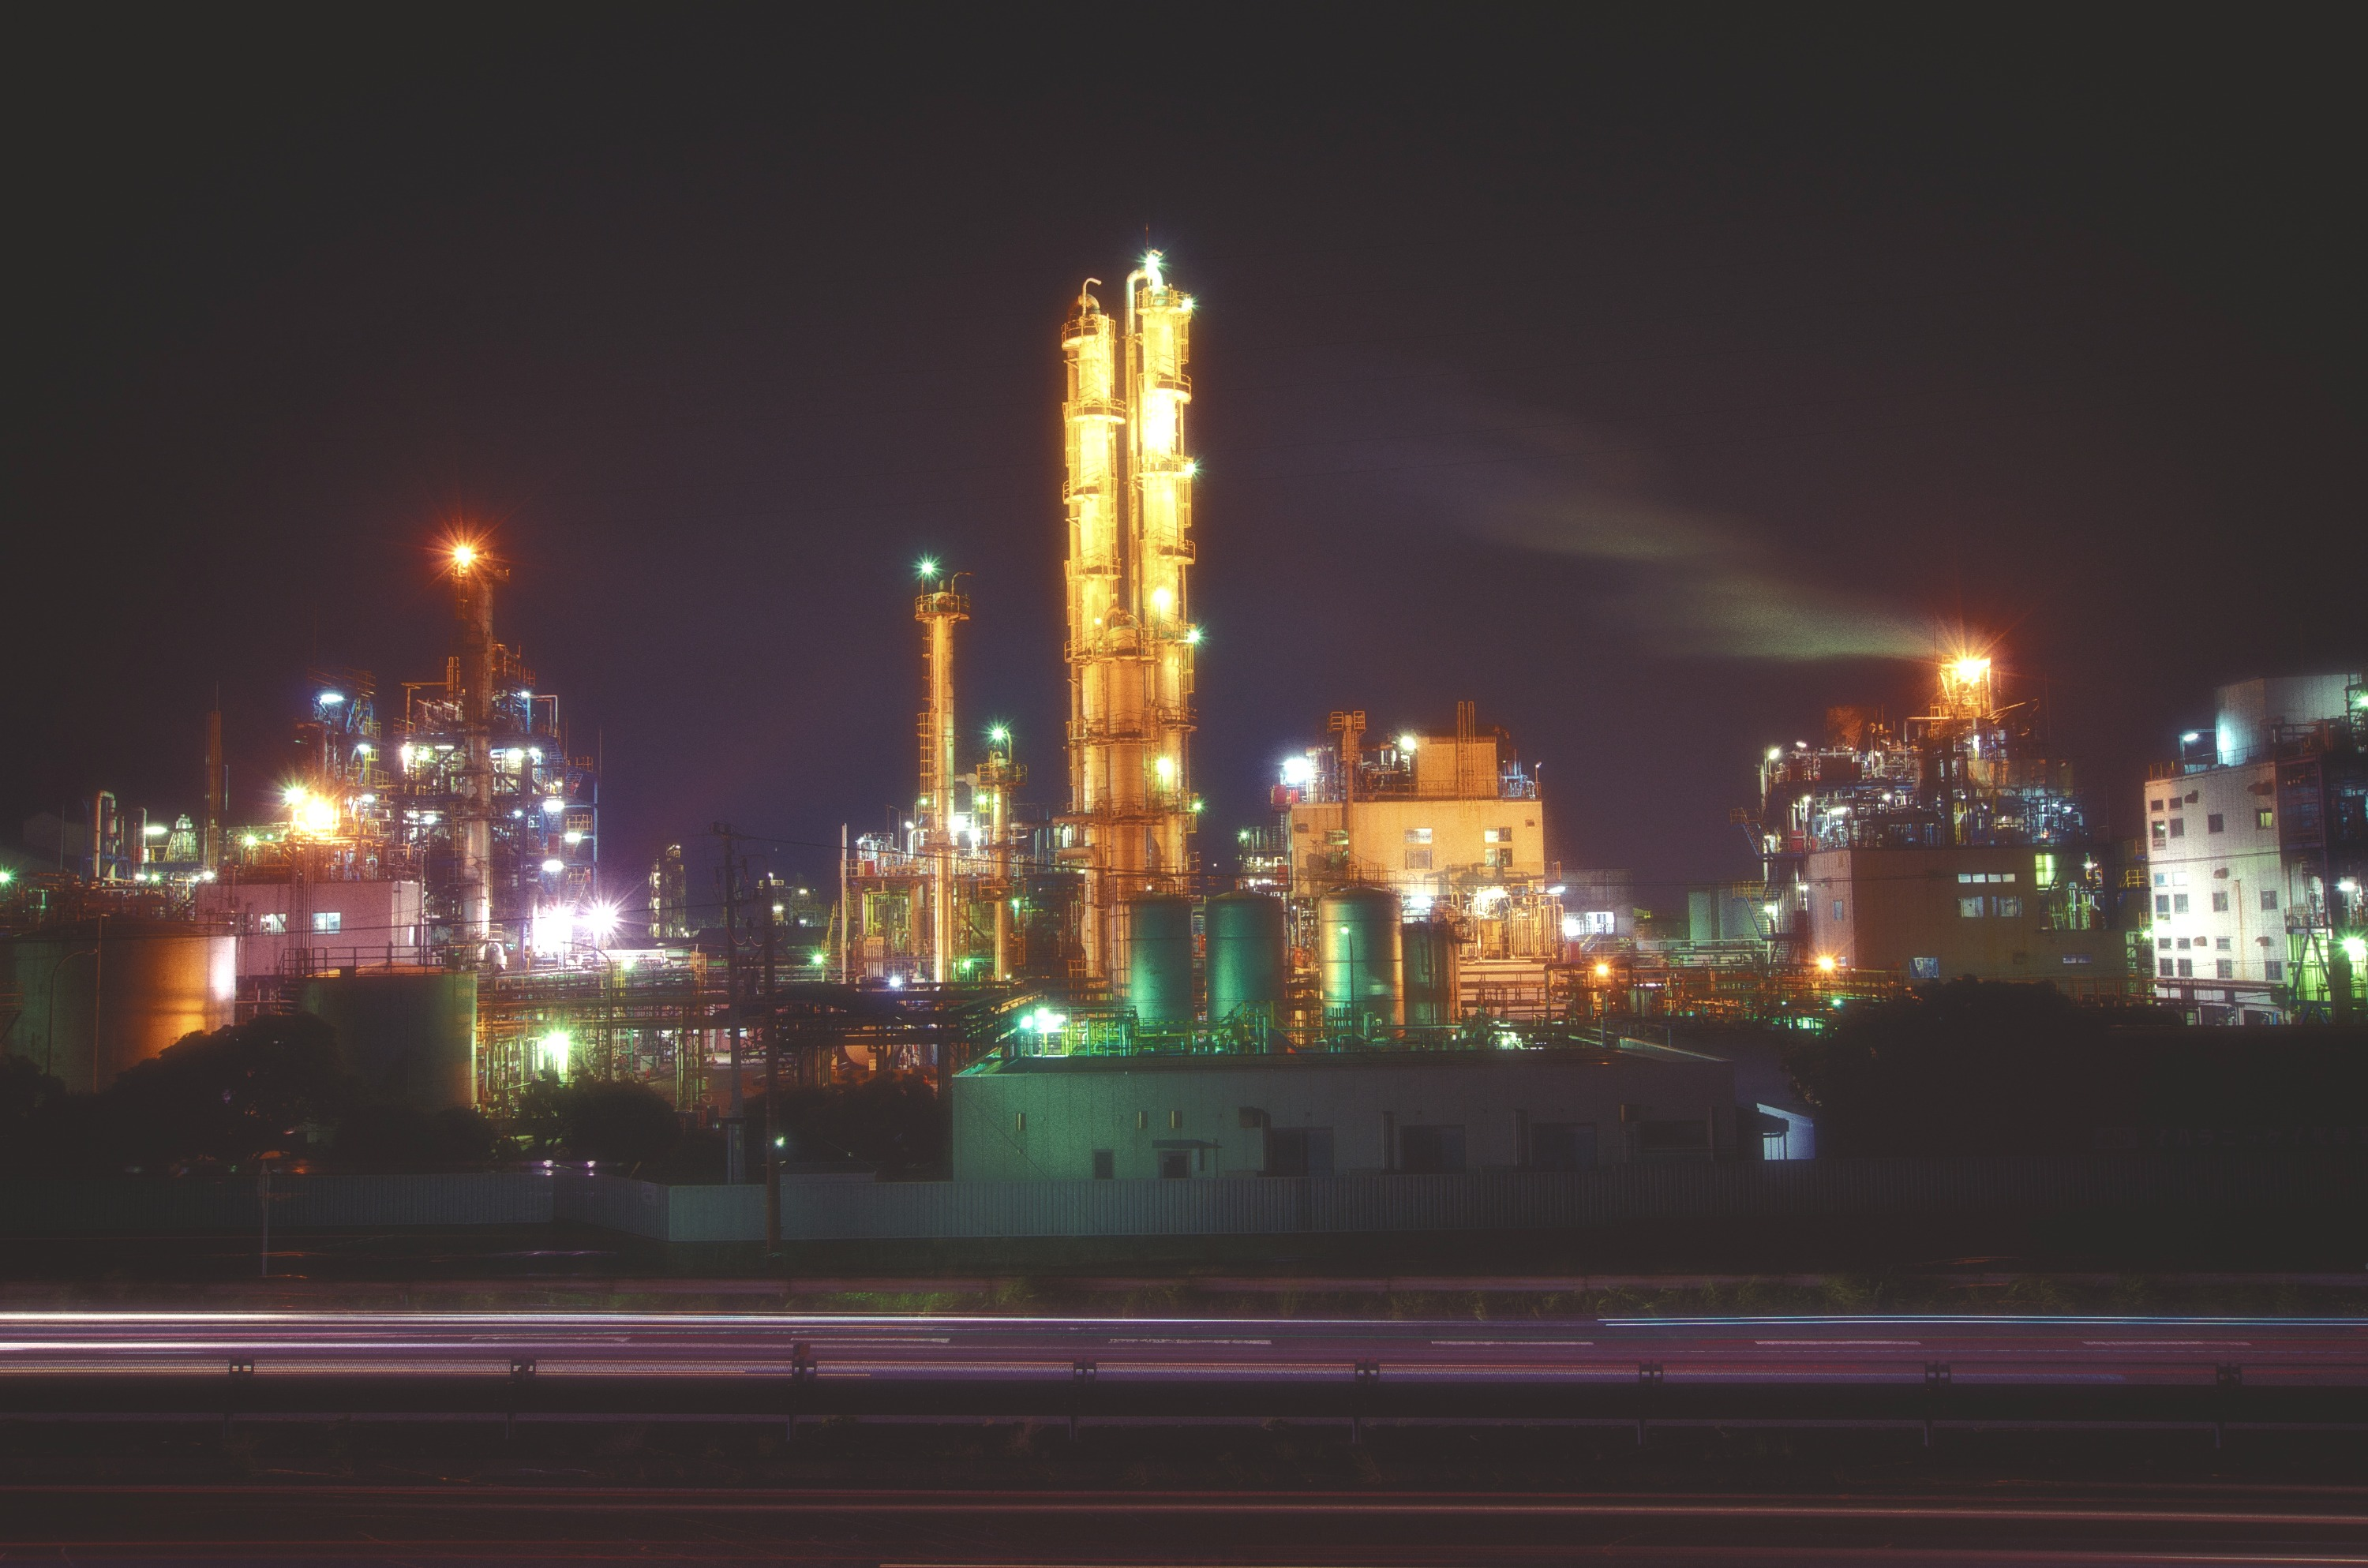 Iharanikkei_Chemical_Industry_-_panoramio_edited.jpg